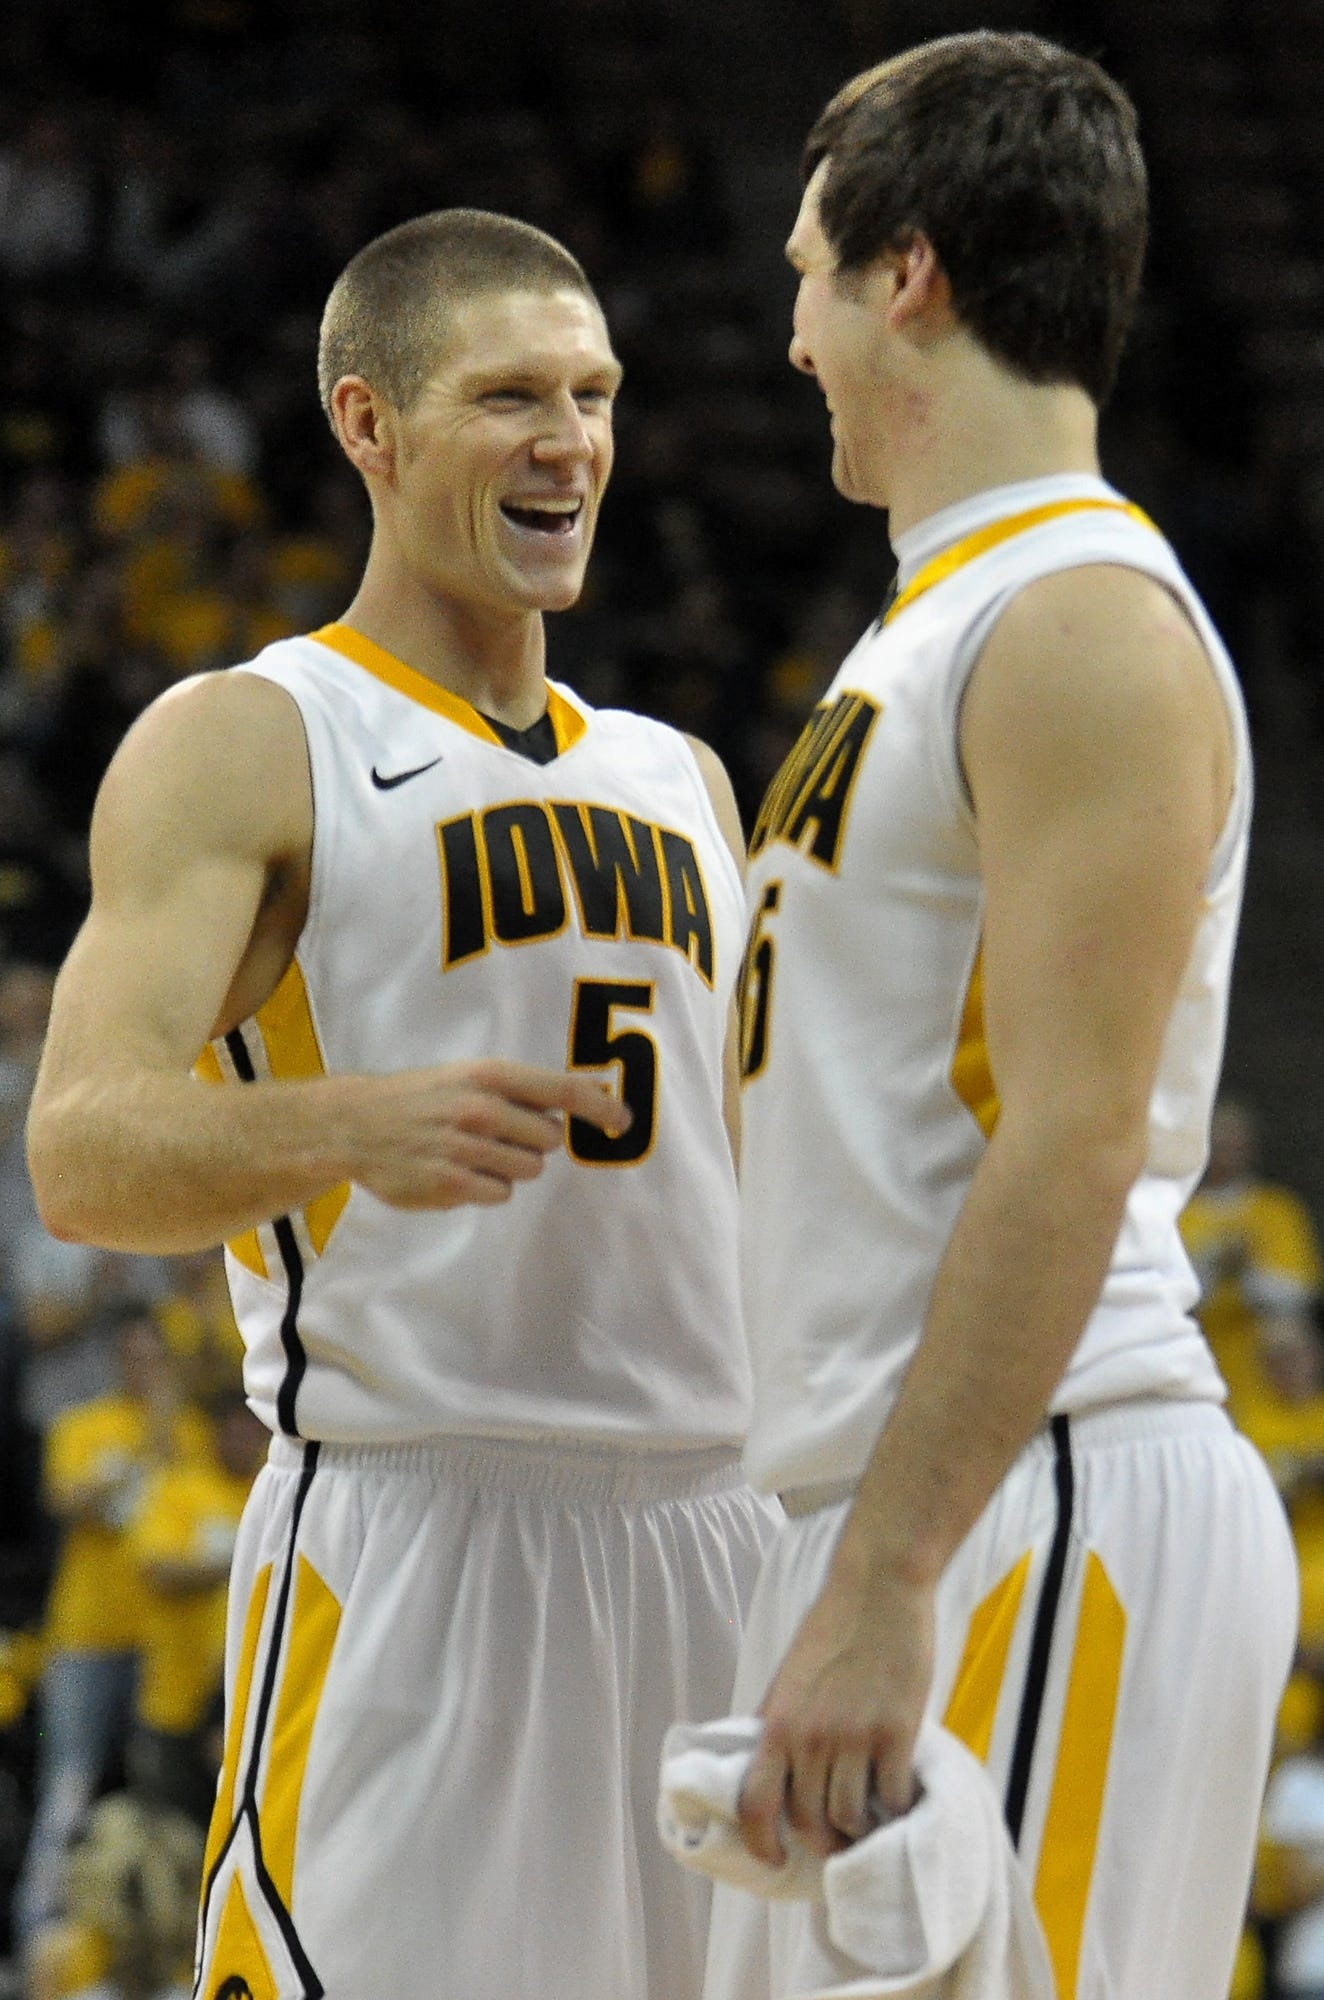 Former Hawkeye star Matt Gatens tries his hand at coaching, for old friend Bruce Pearl